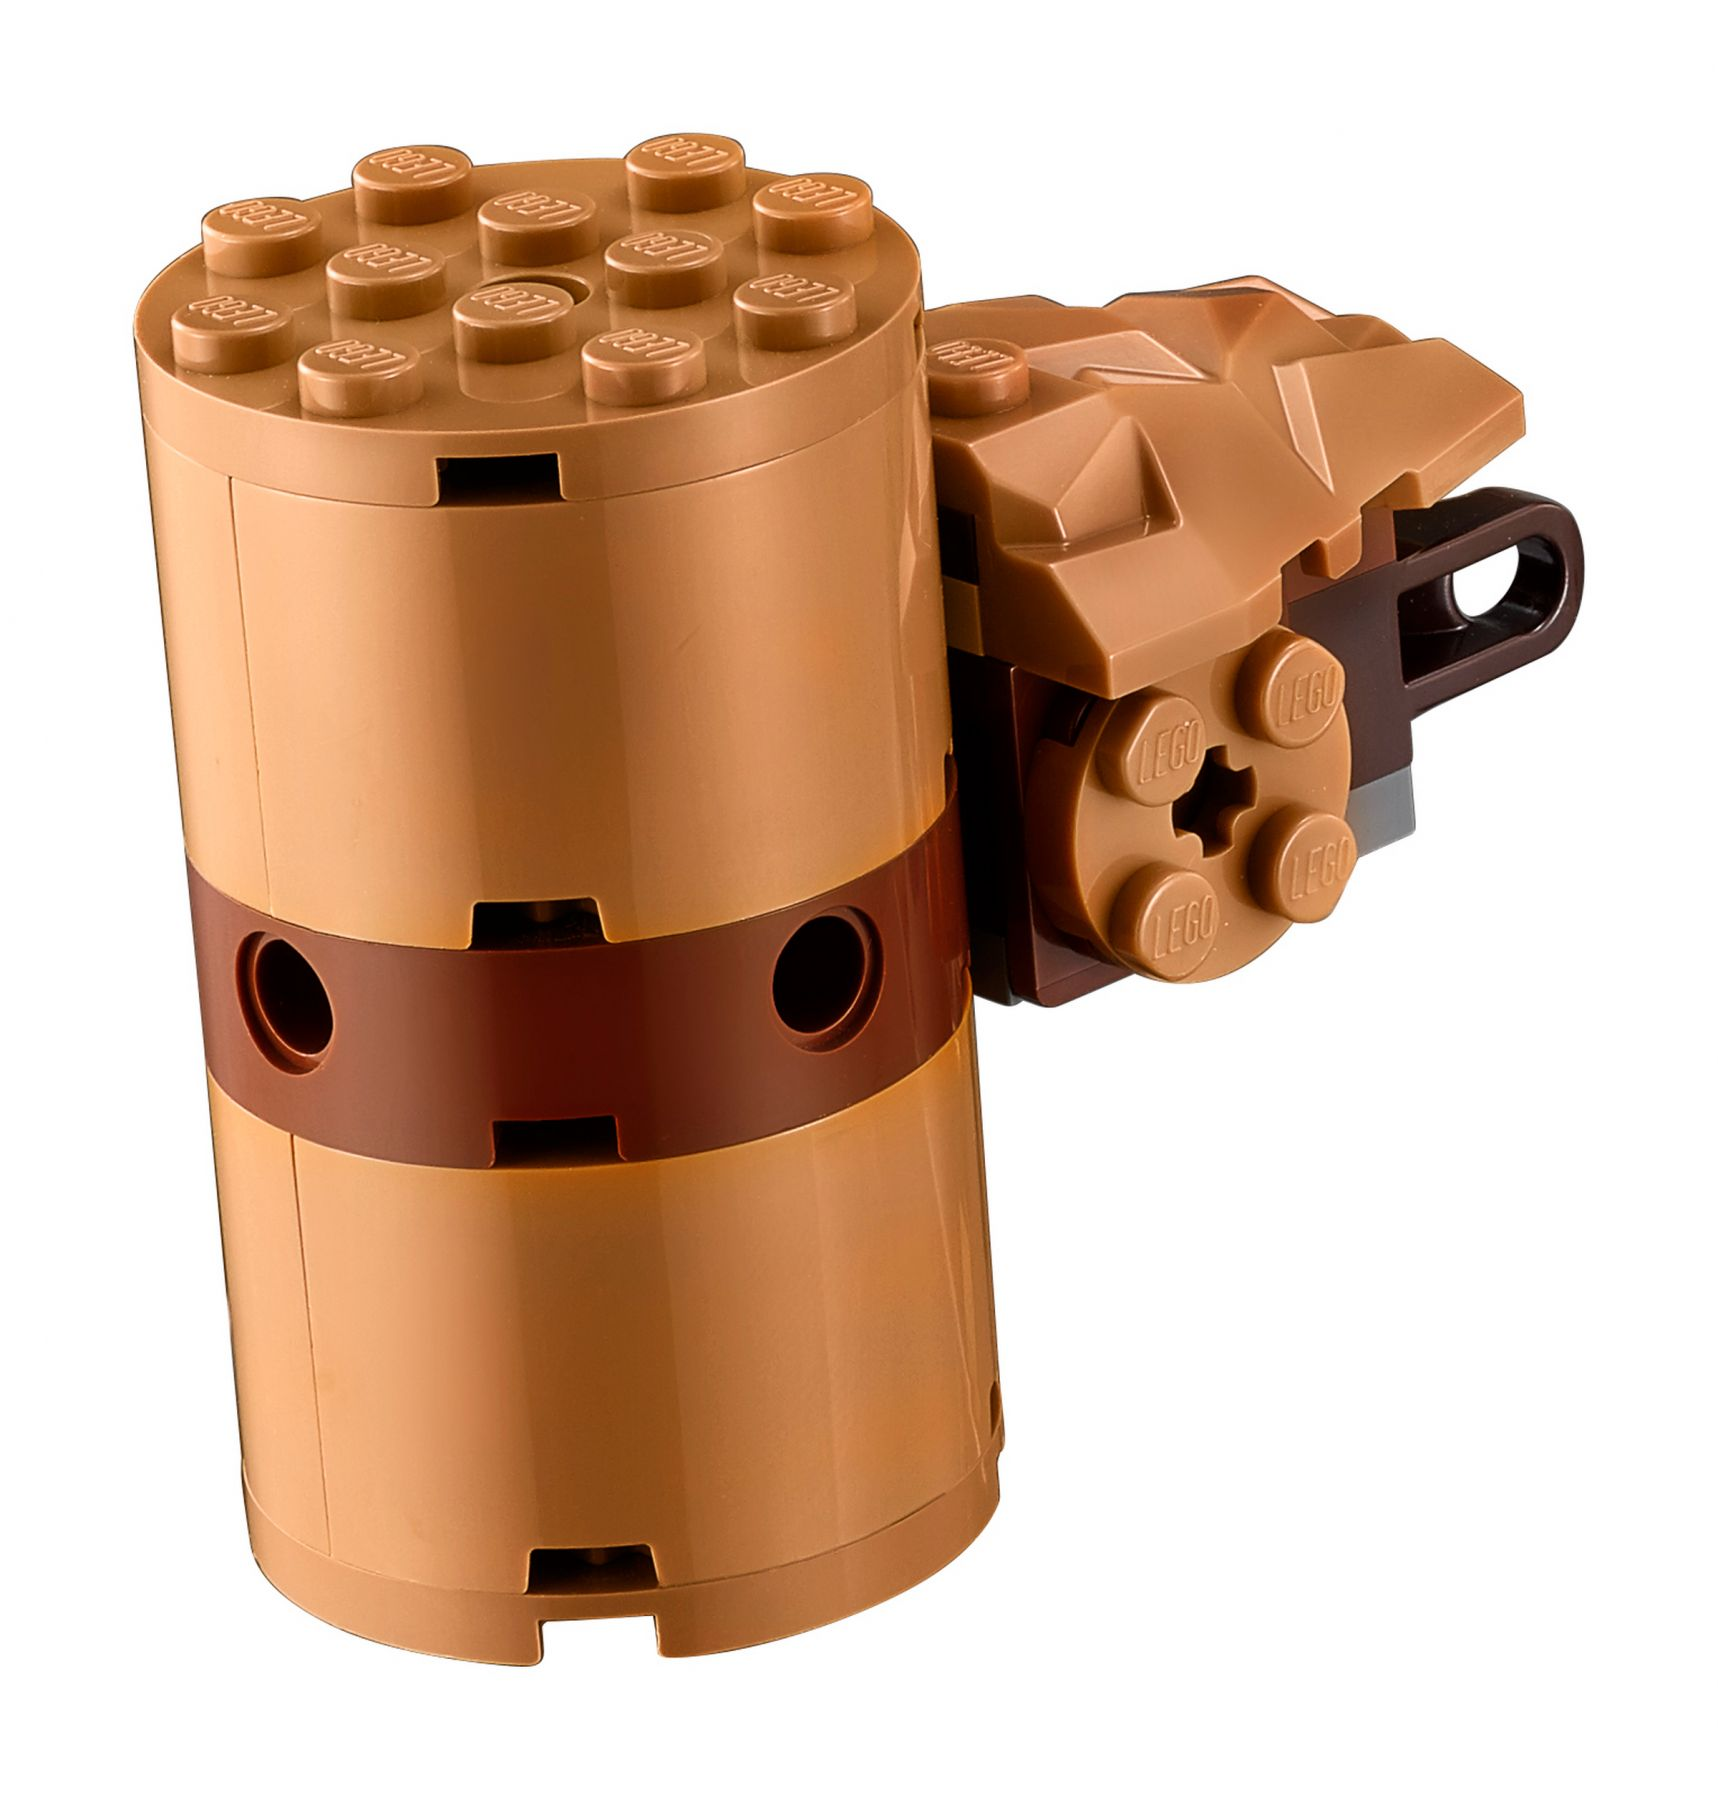 LEGO The LEGO Batman Movie 70904 Clayface™: Matsch-Attacke LEGO_70904_alt4.jpg